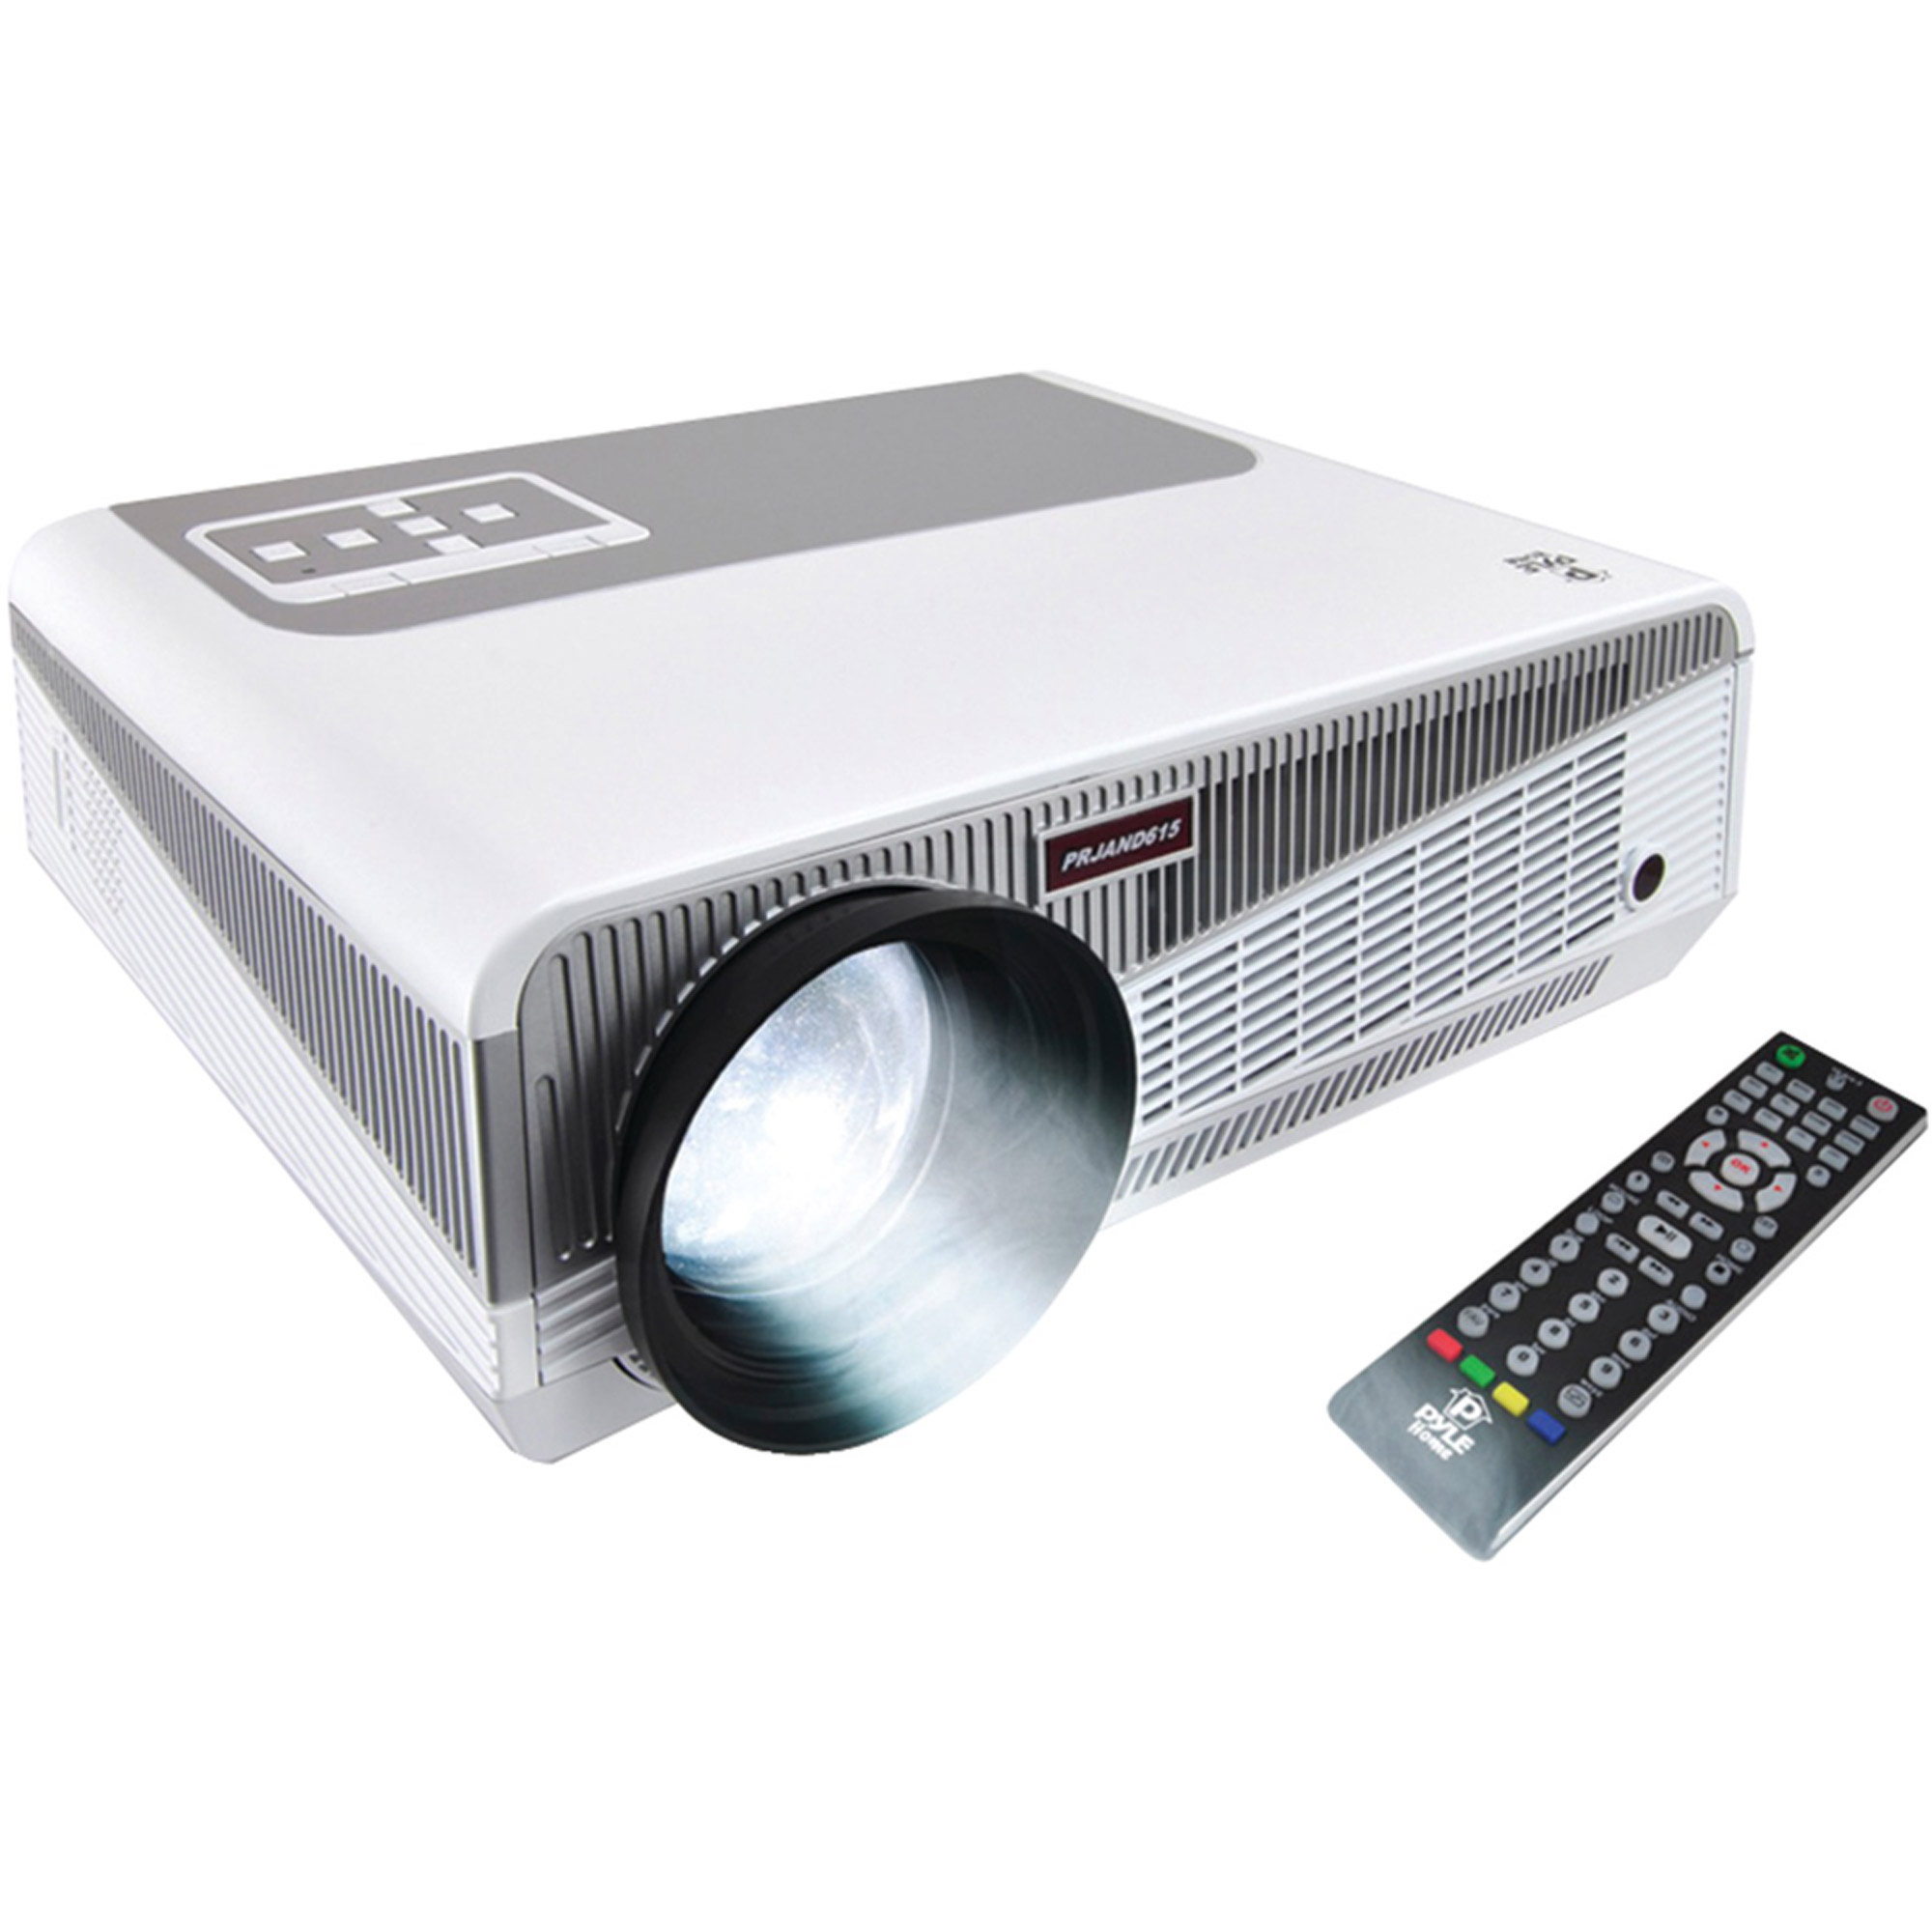 Pyle PRJAND615 HD Android 1080p Smart Projector with WiFi and Blu-ray Disc Support